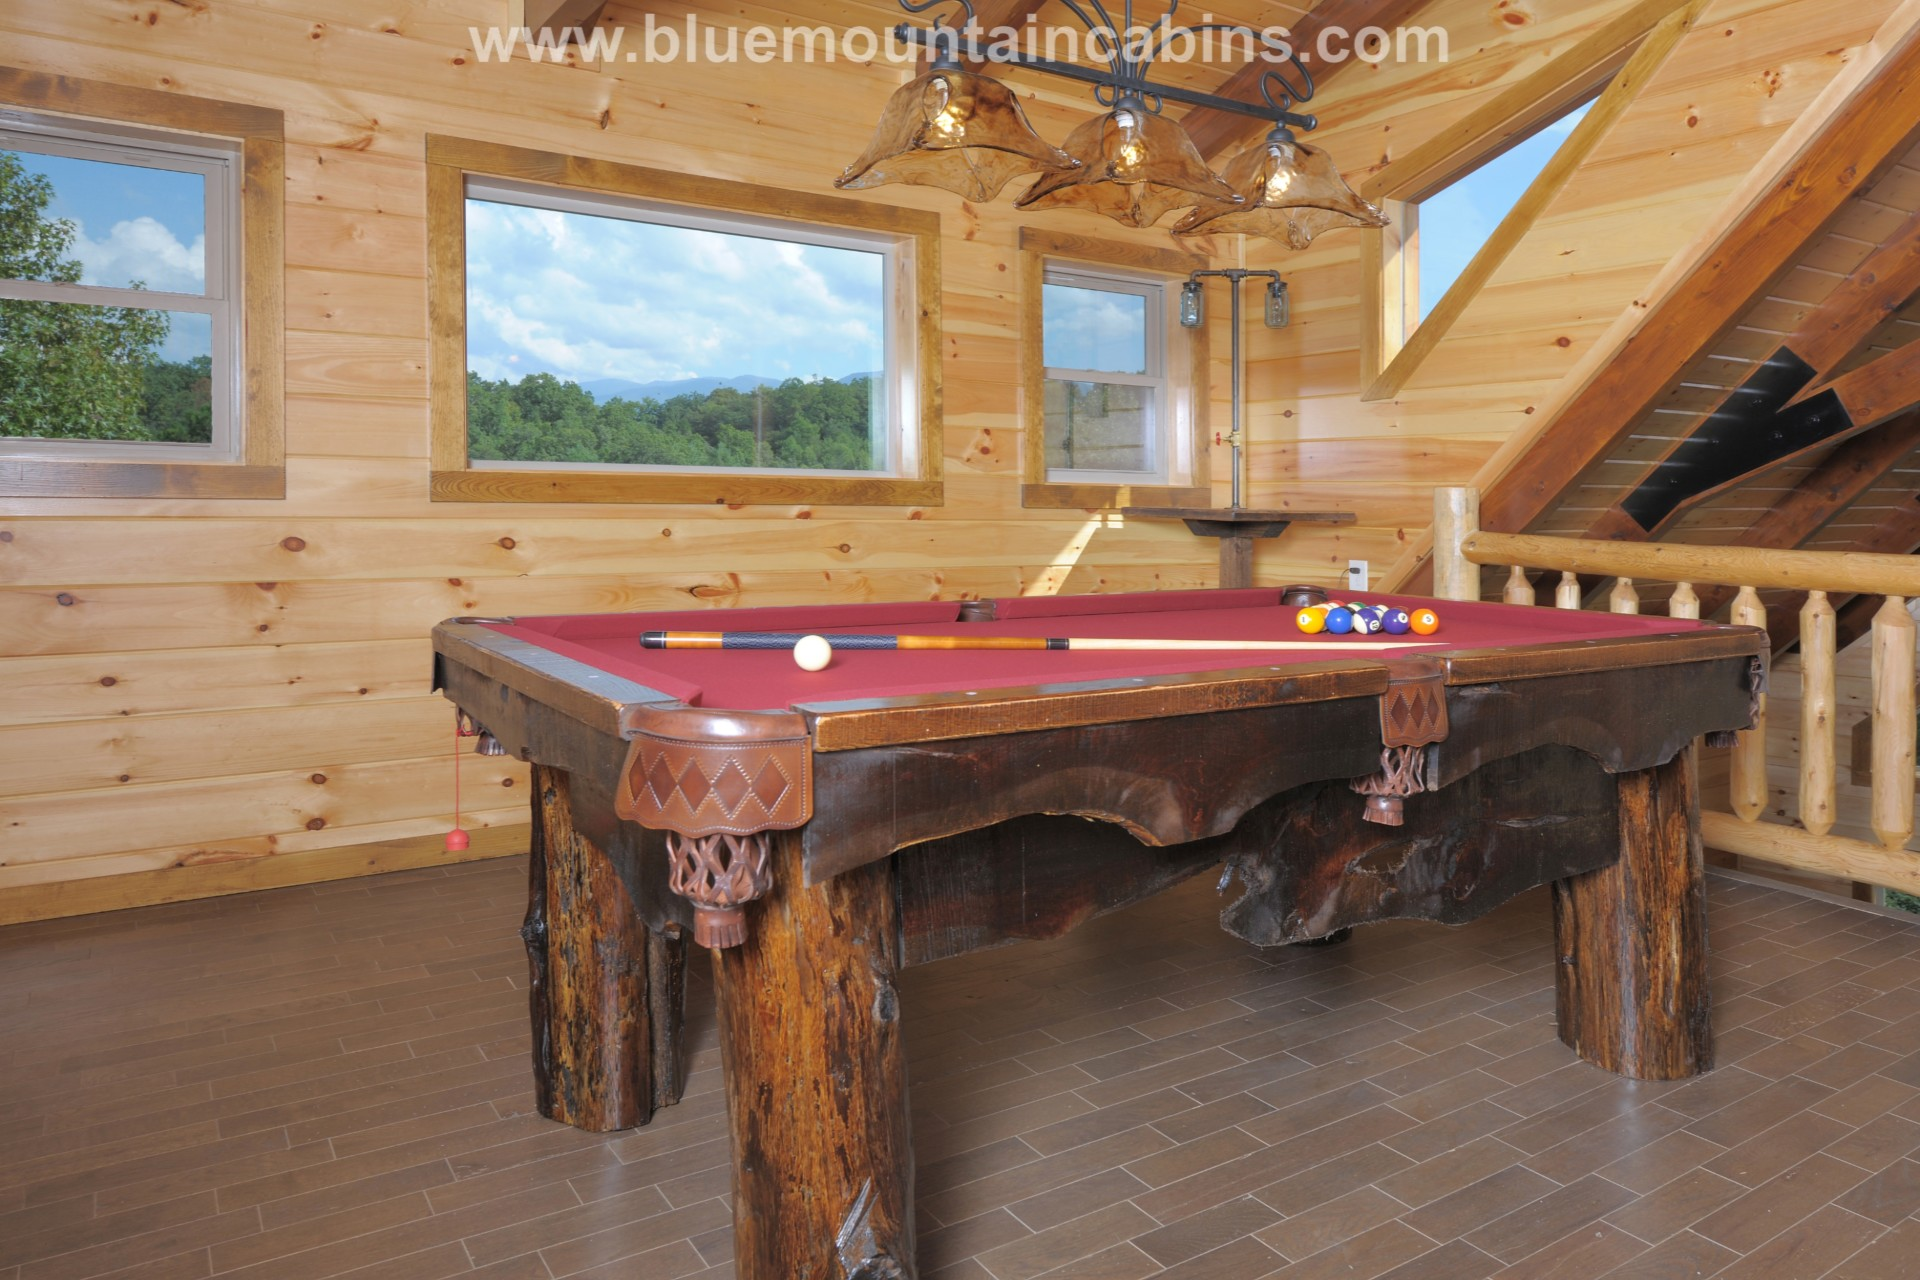 Smoky mountains cabin one of a kind pool table made from tree trunks